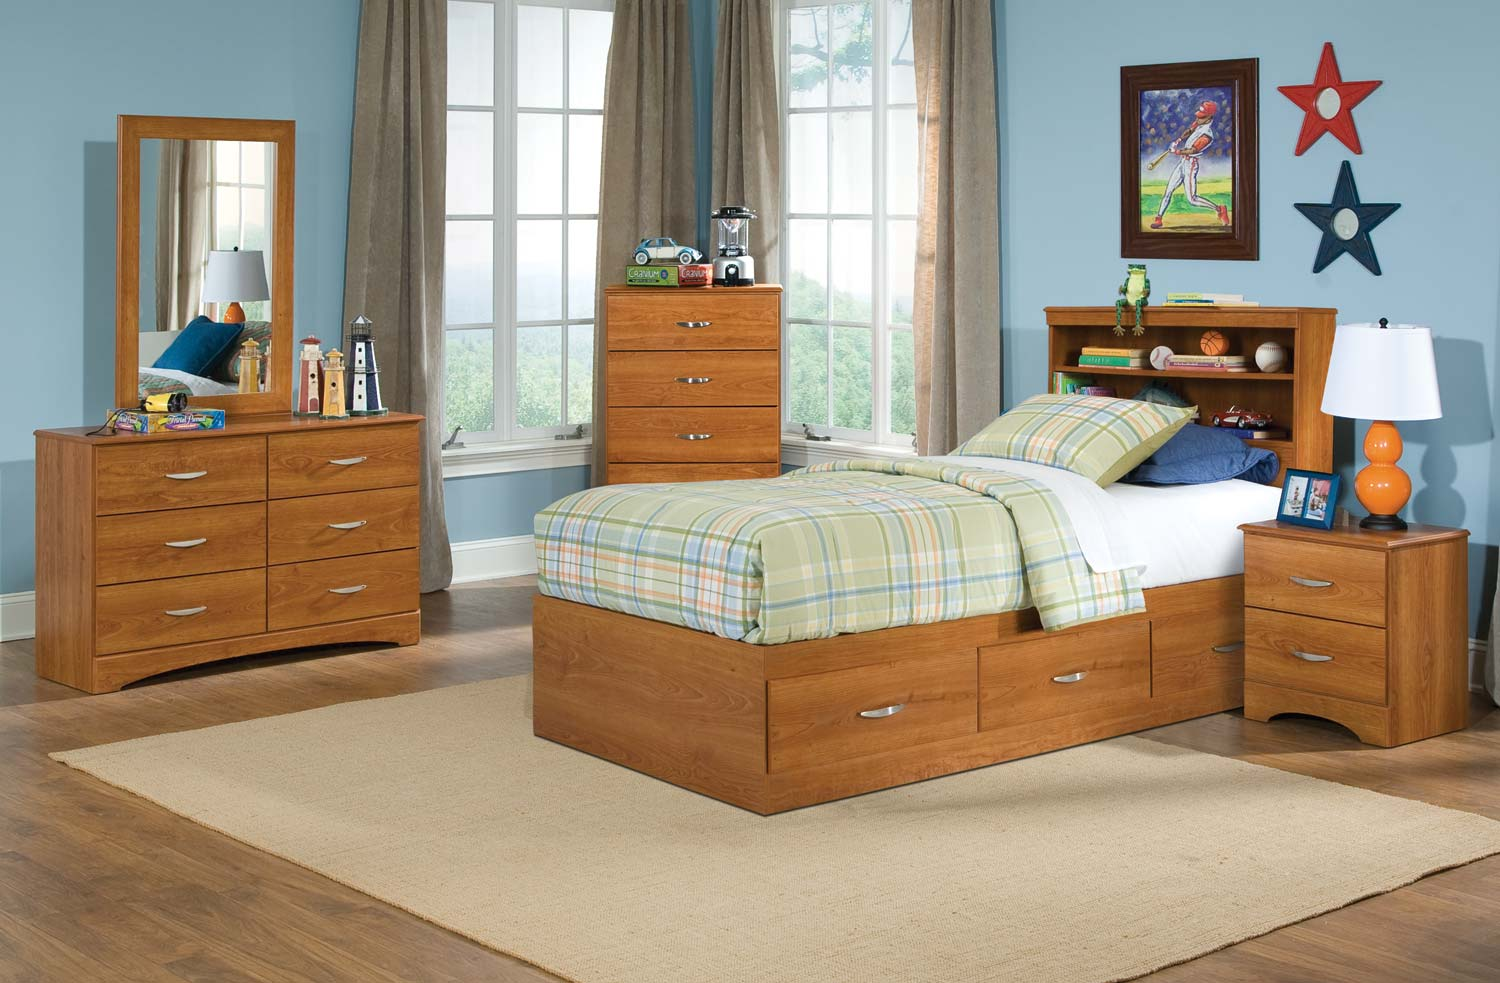 Kith Furniture Tanner 3 Drawer Mates Bedroom Set